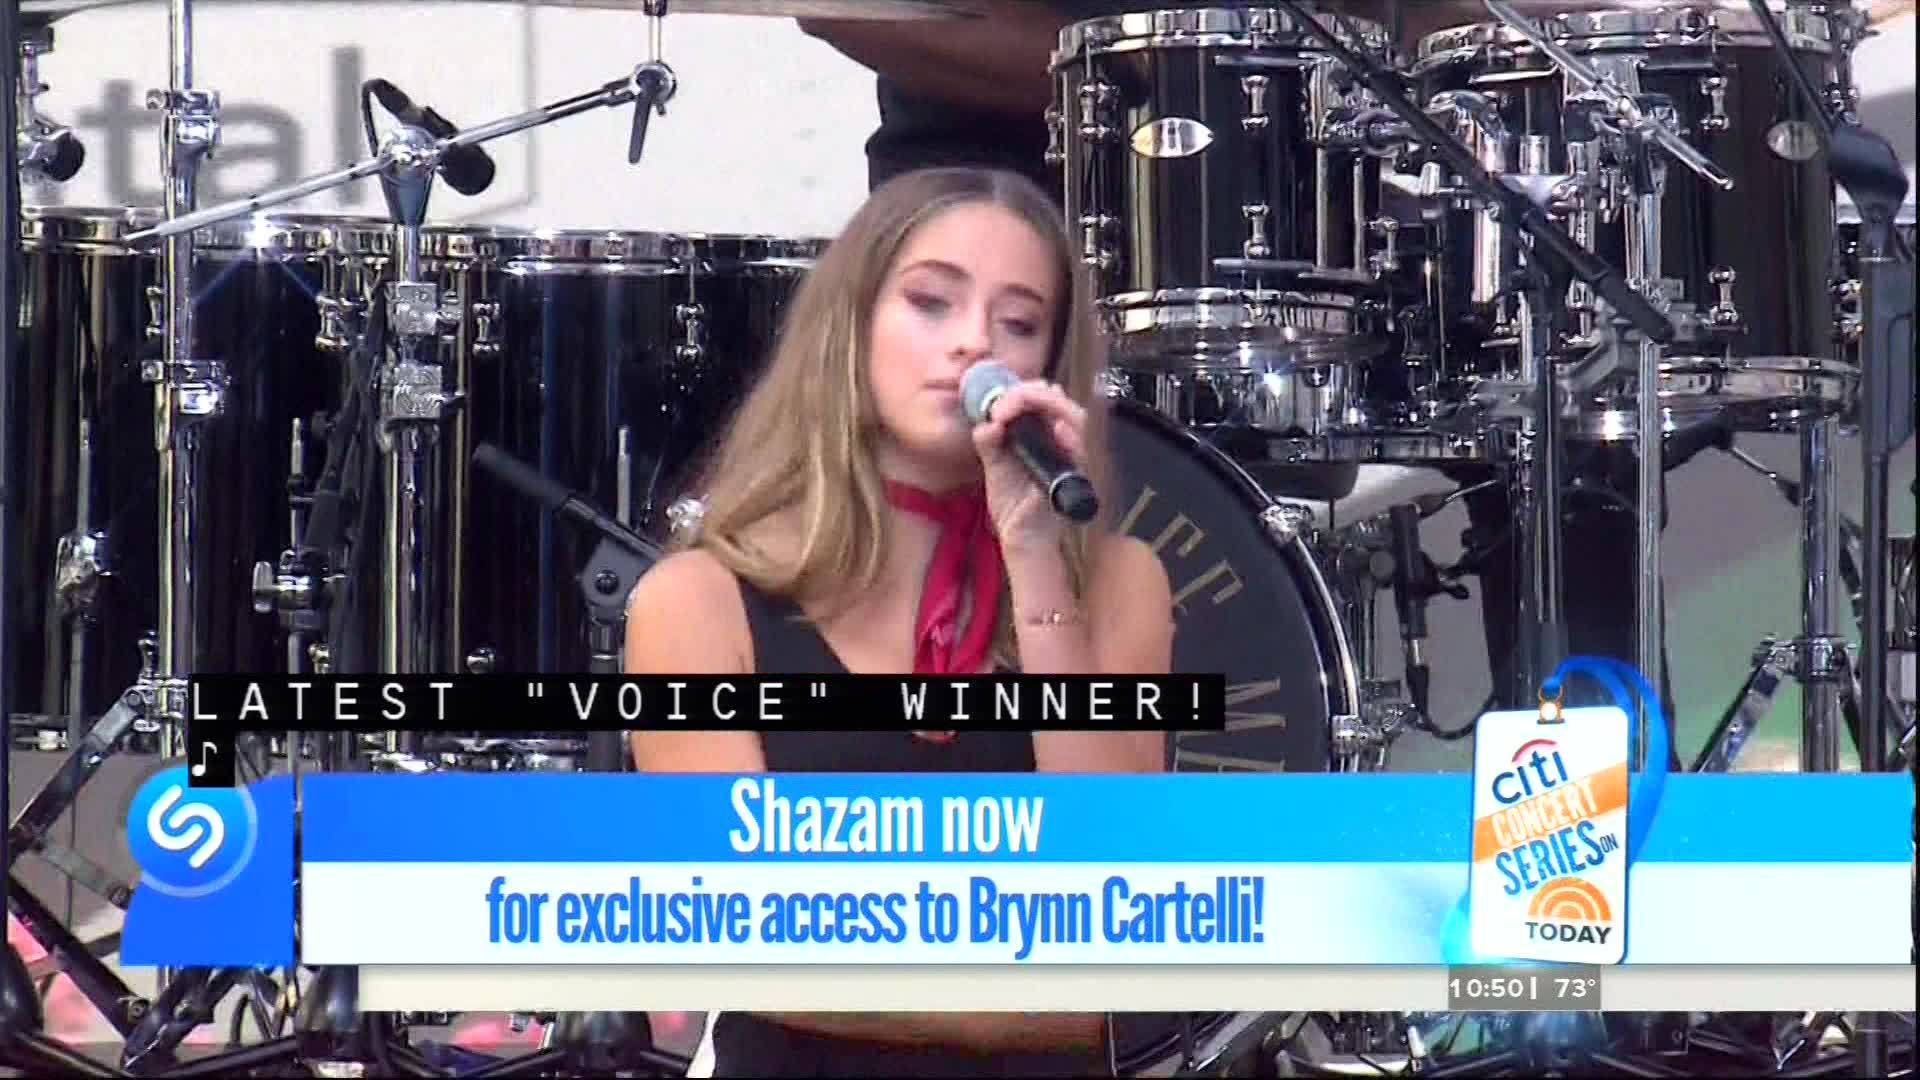 Brynn_Cartelli_performed_on_Today_Show_p_0_20180608170421